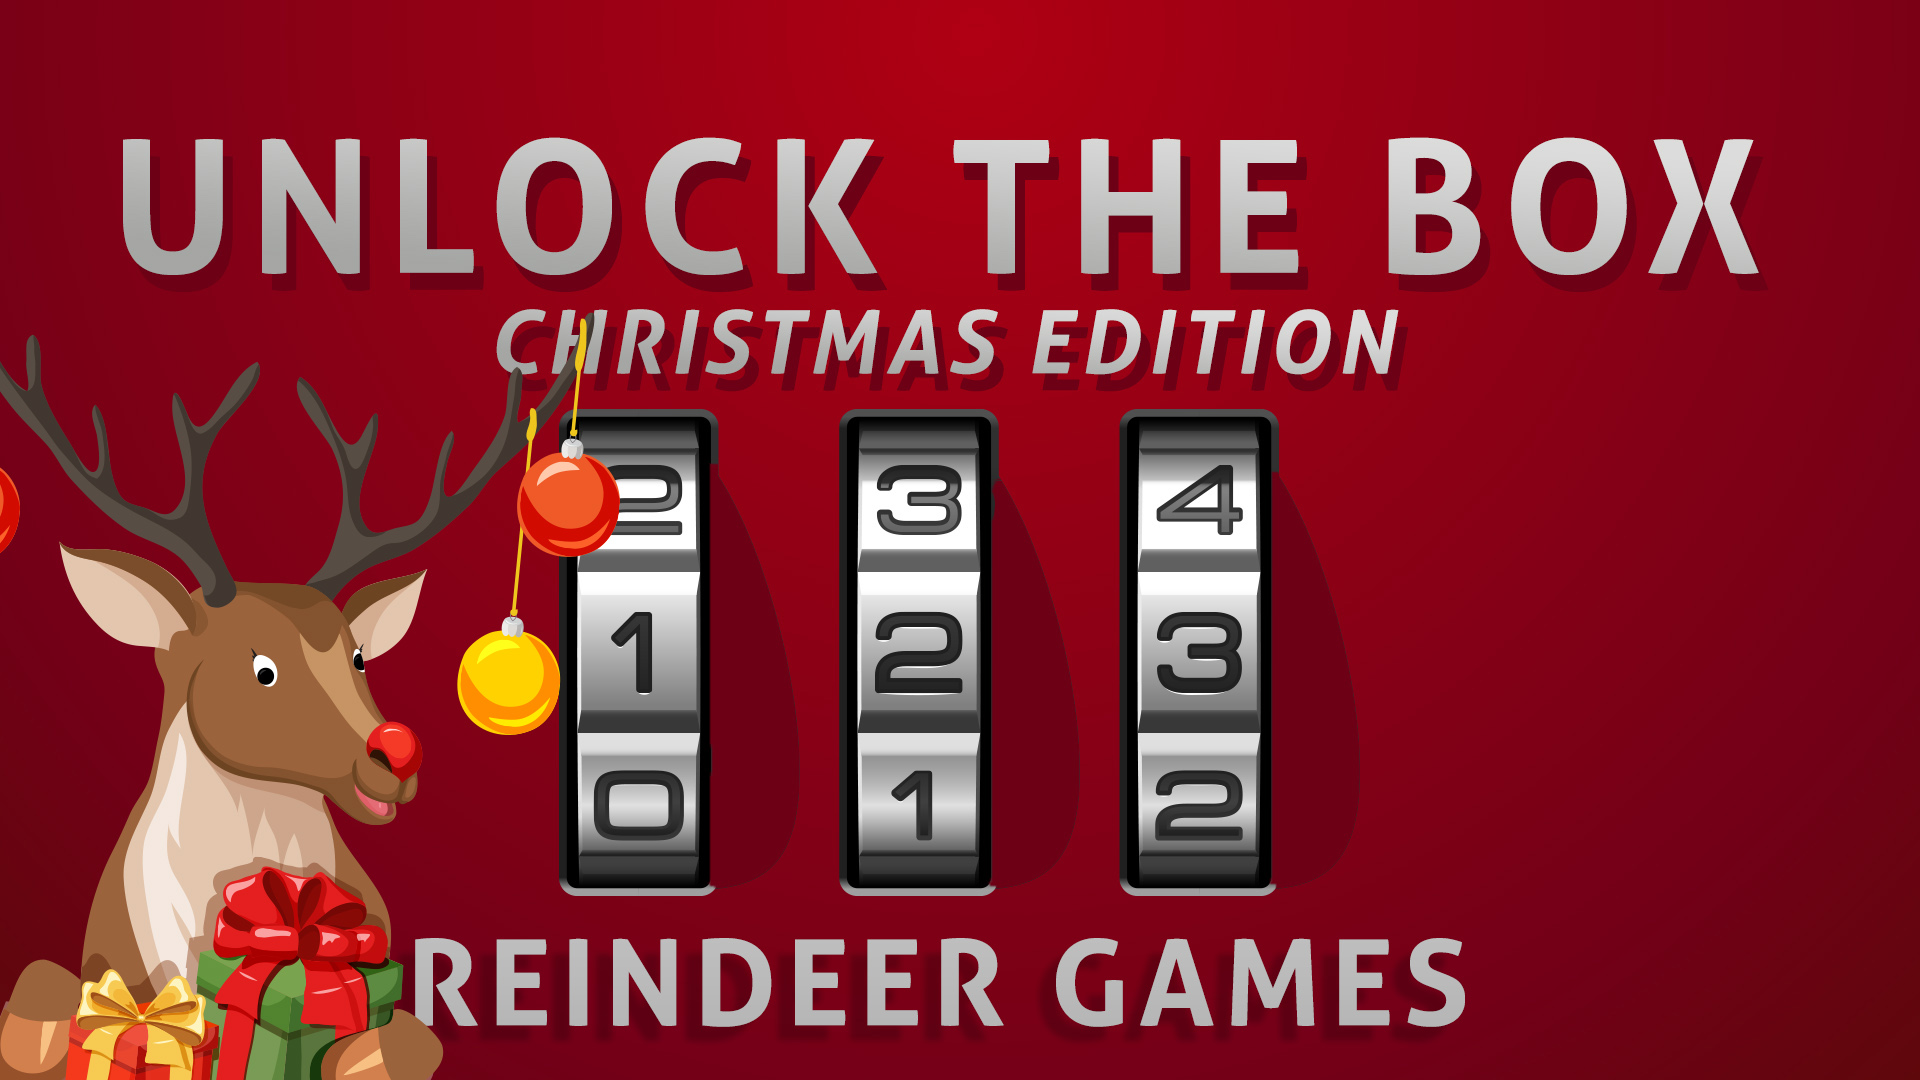 Unlock the Box Christmas Edition 2 Reindeer Games